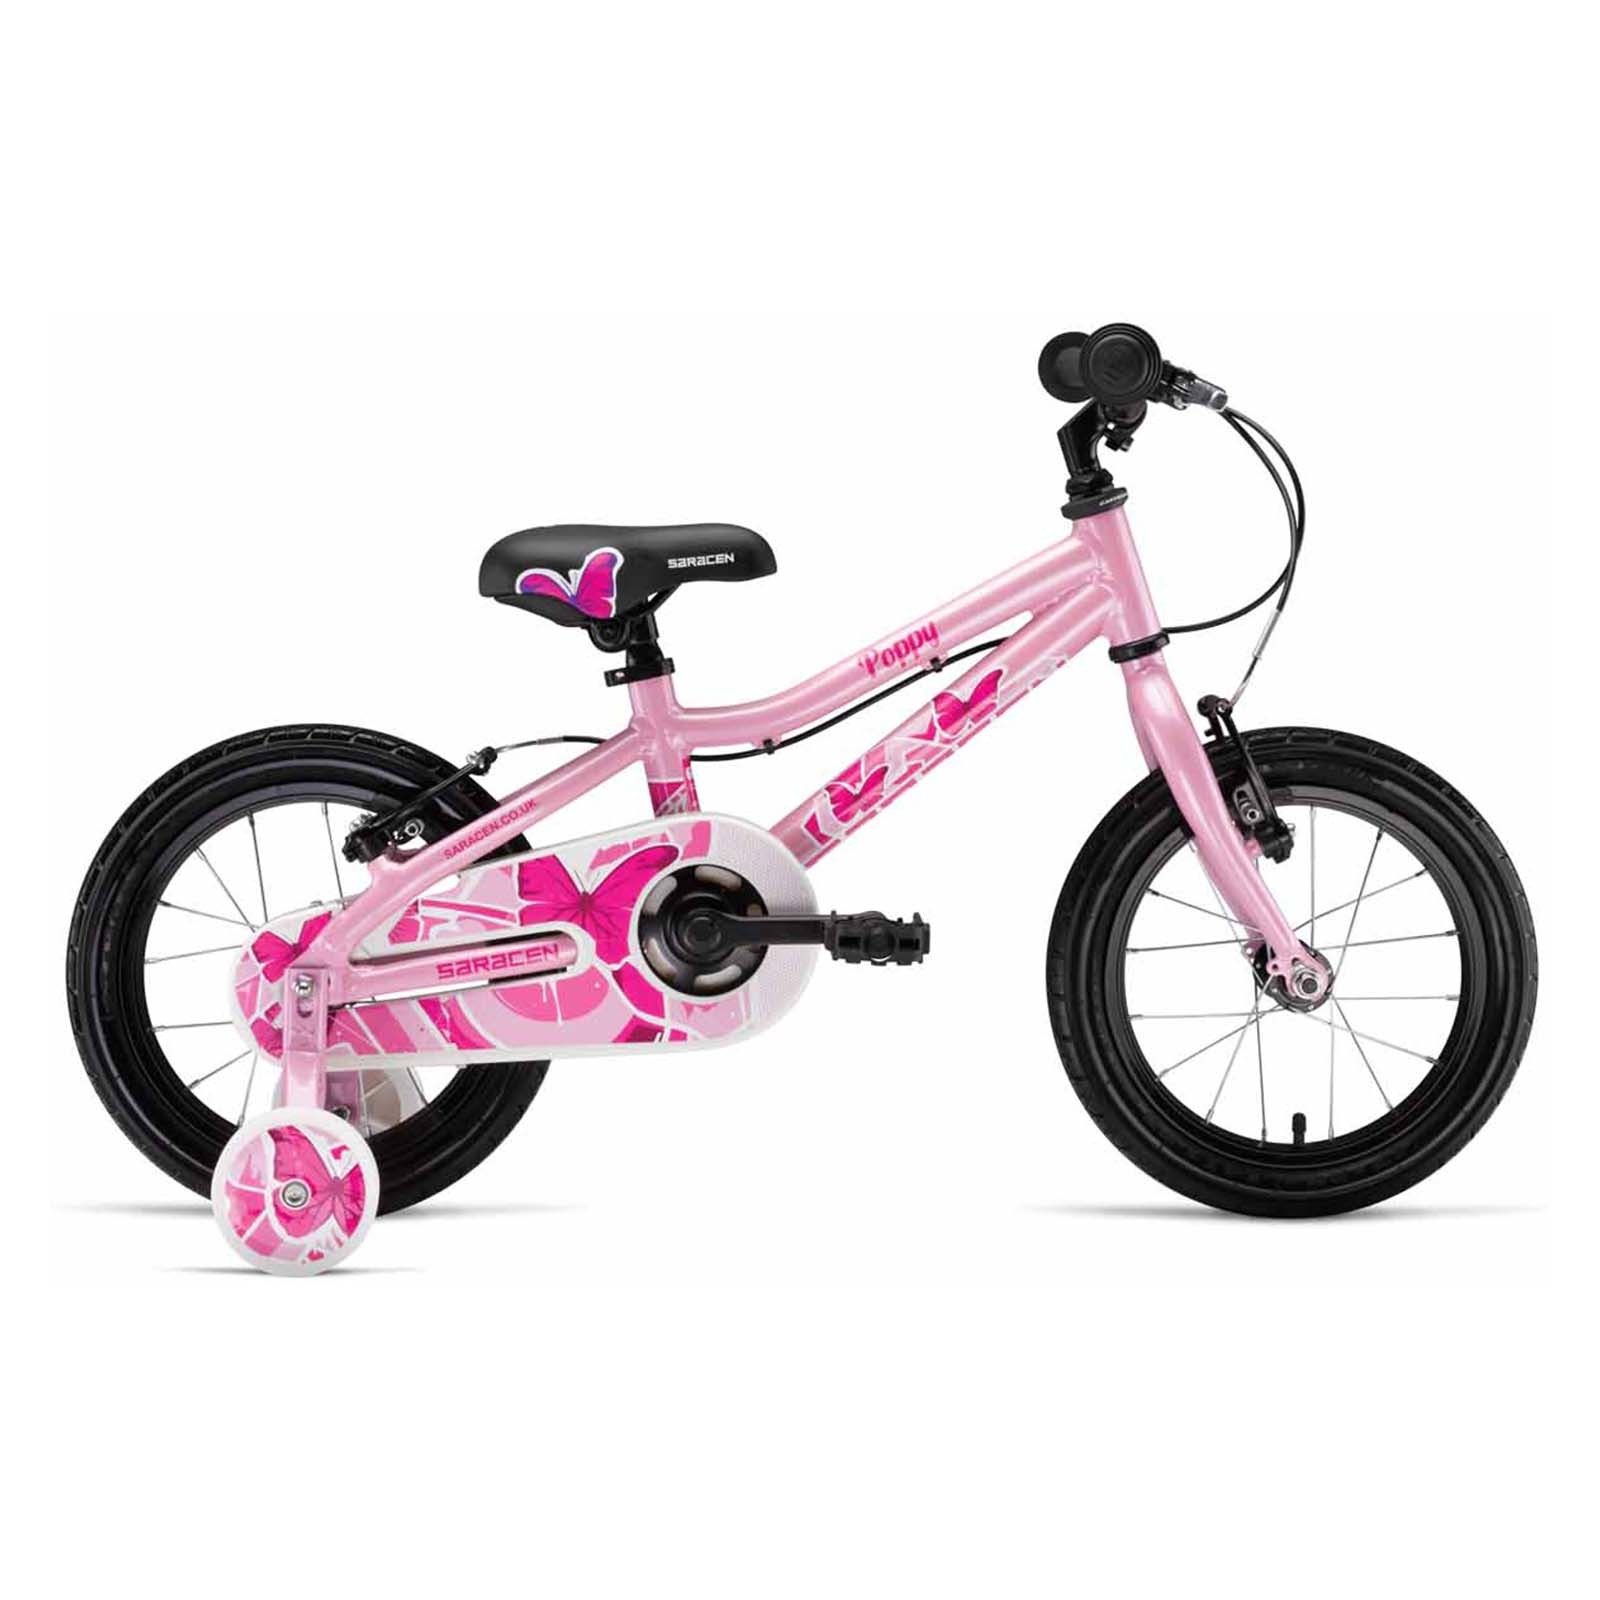 Saracen Poppy JNR 14inch girls bike RRP £149.99 OURS £90